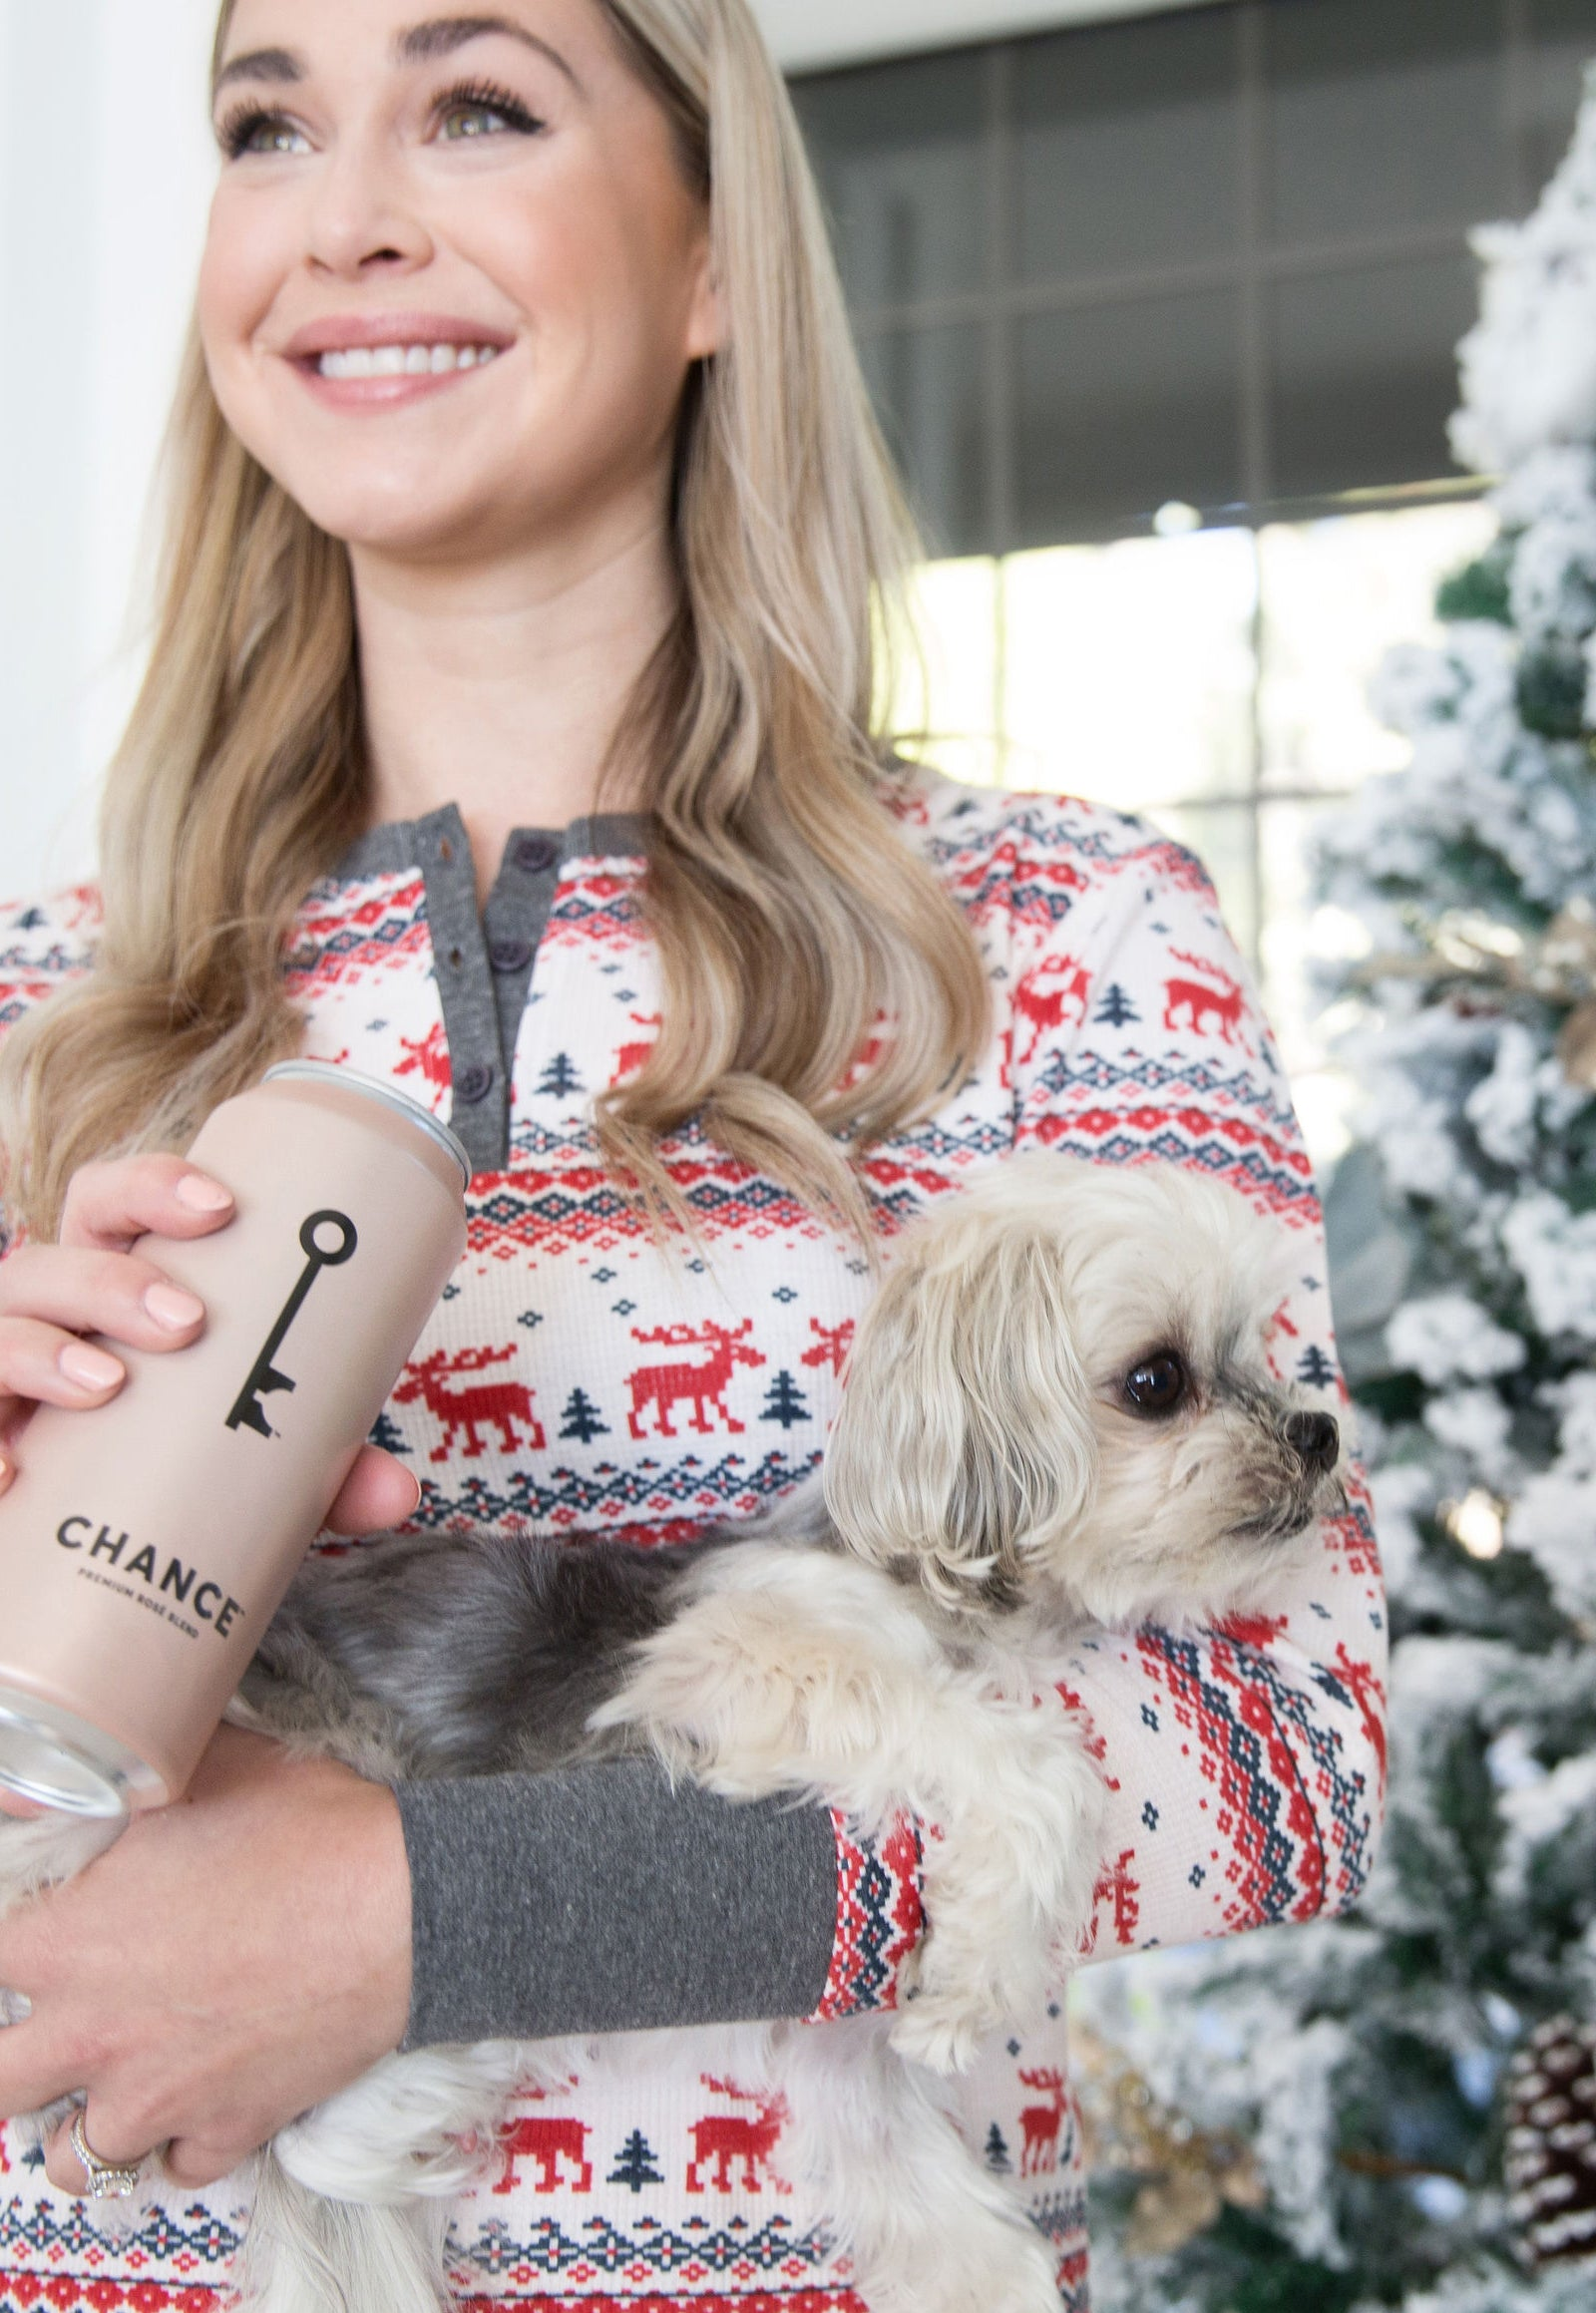 CHANCE canned rosé wine makes a great stocking stuffer